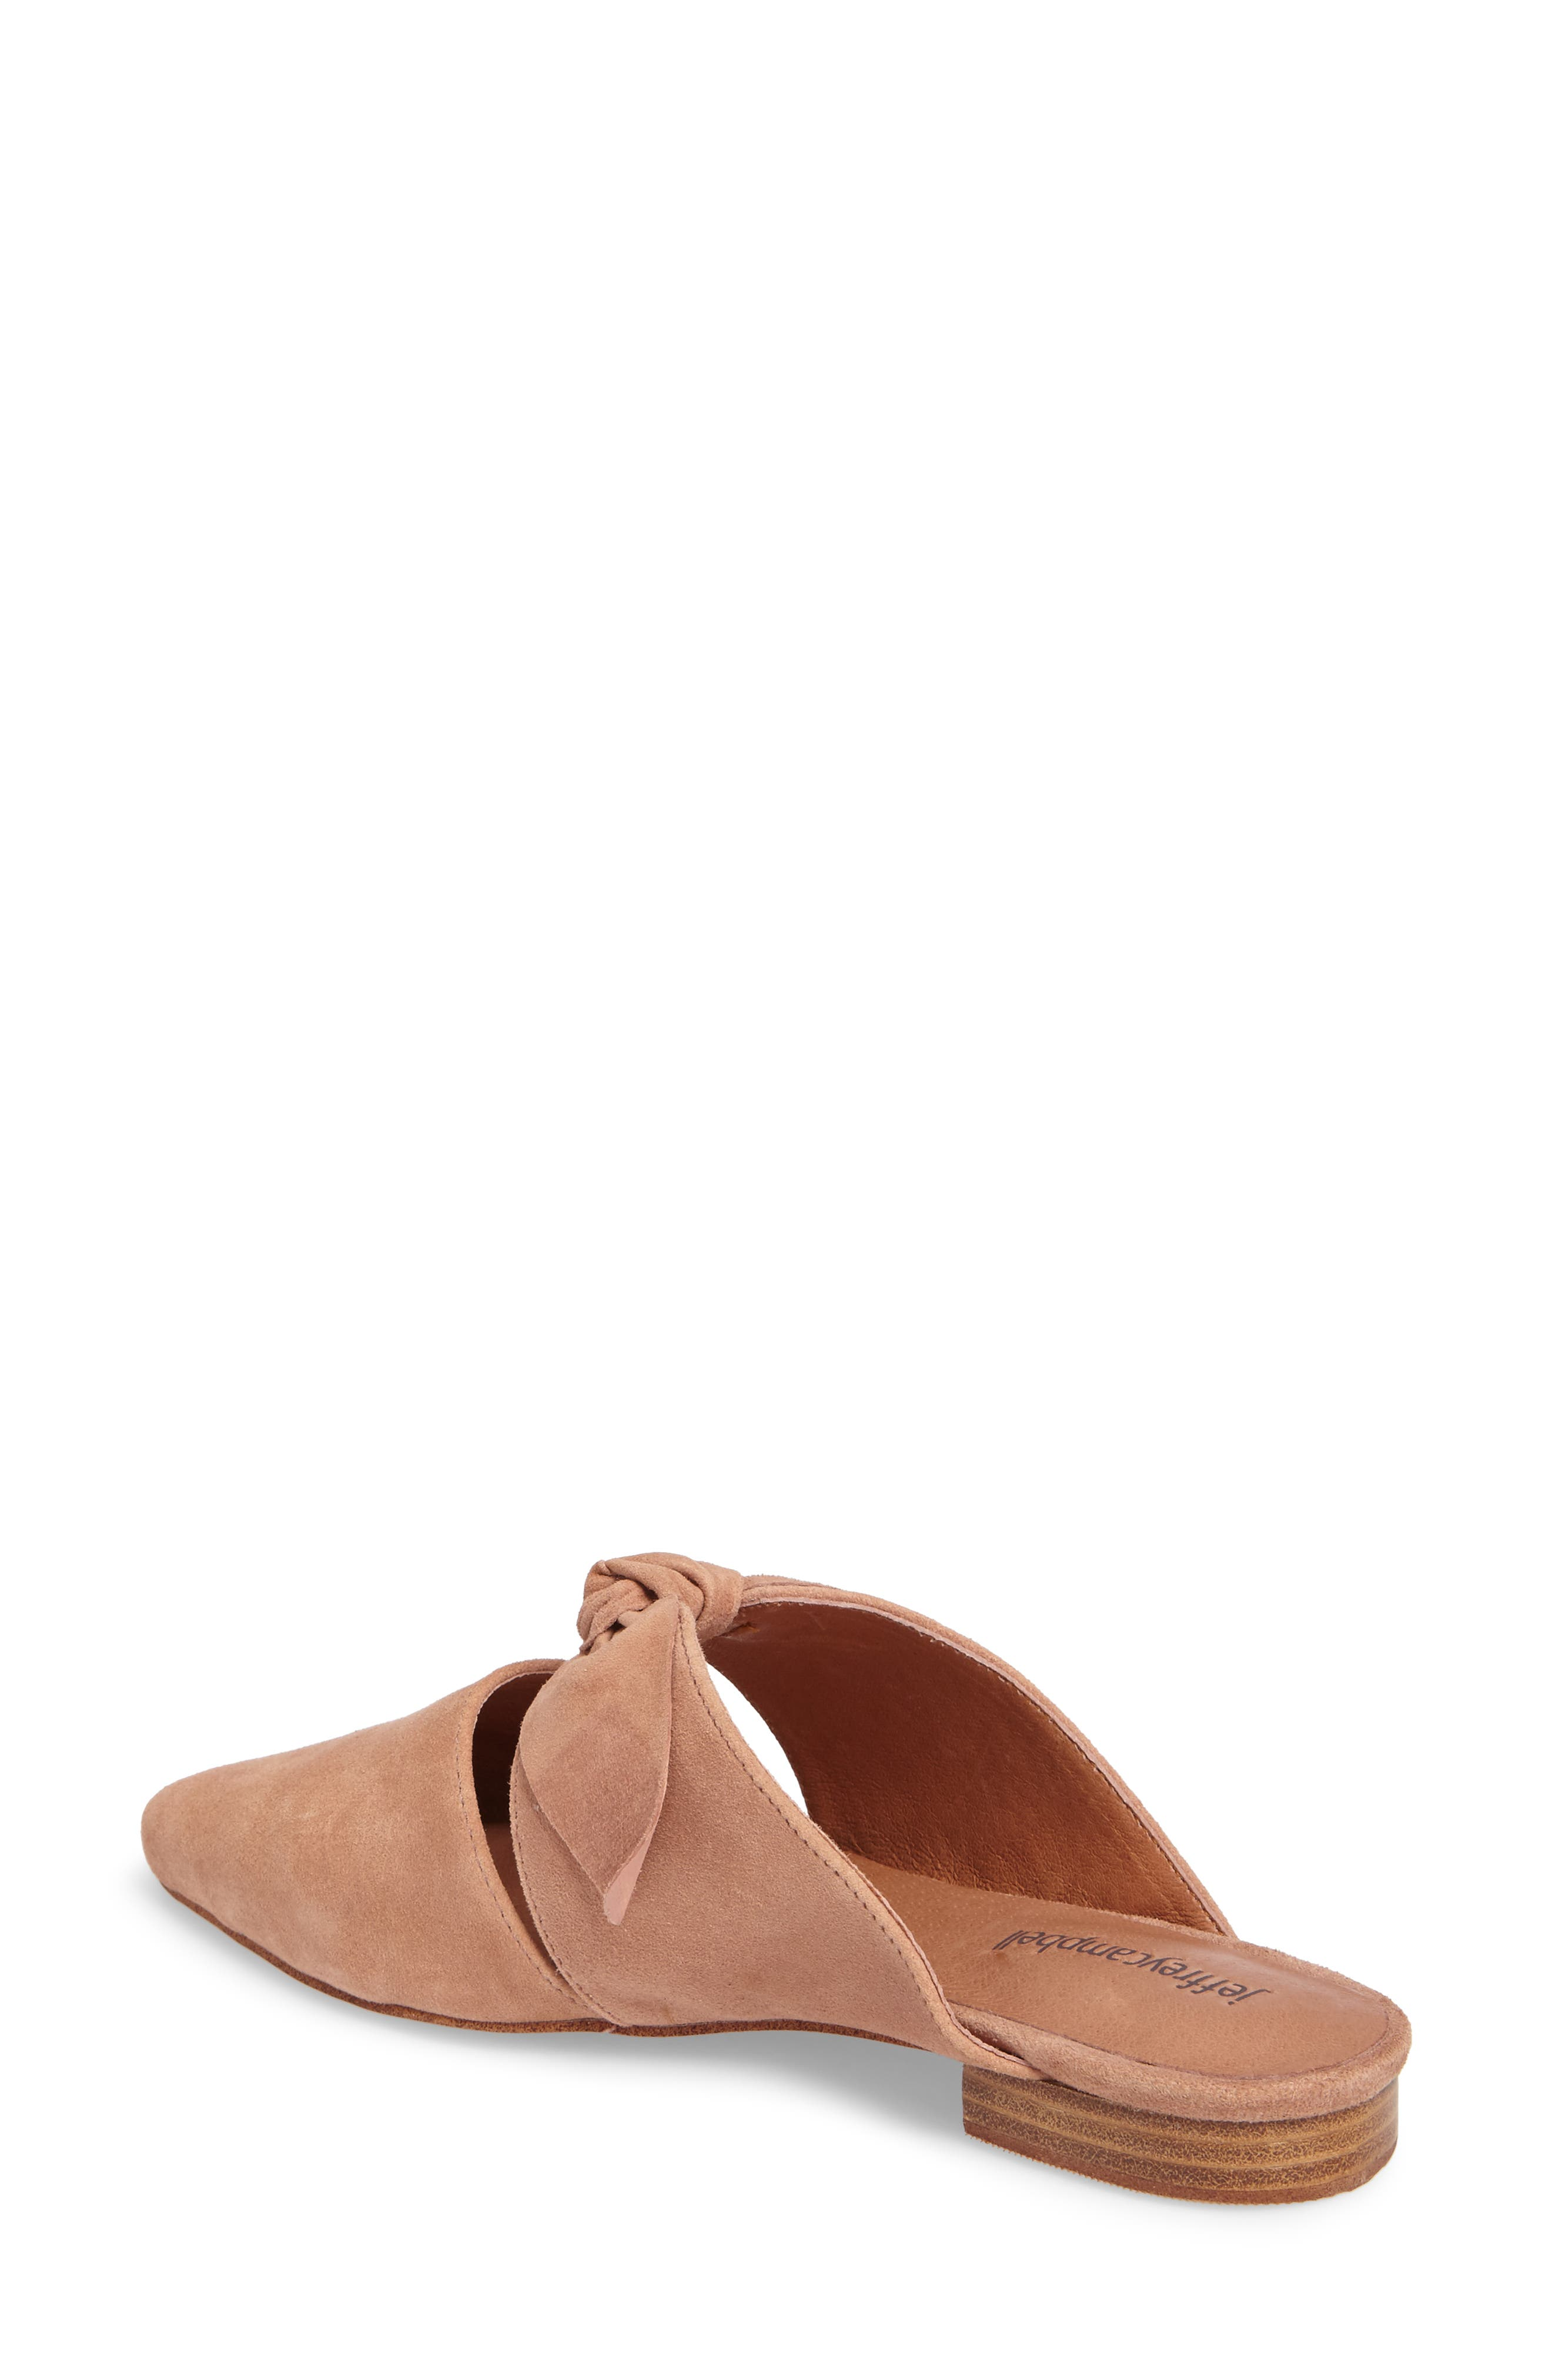 Charlin Bow Mule,                             Alternate thumbnail 2, color,                             Blush Suede